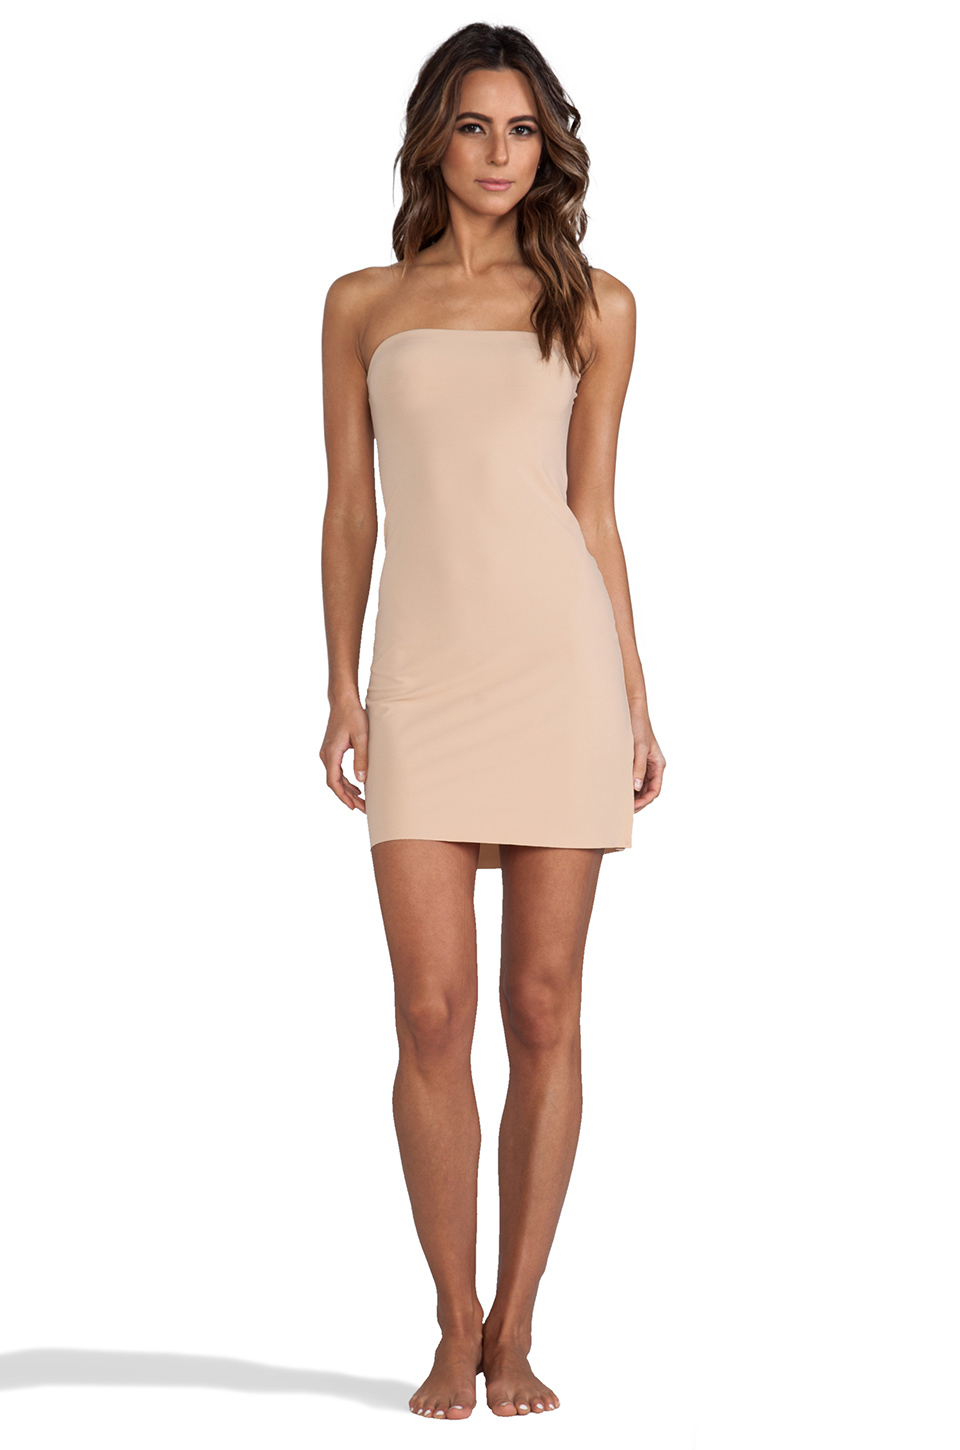 Commando Strapless Slip in True Nude